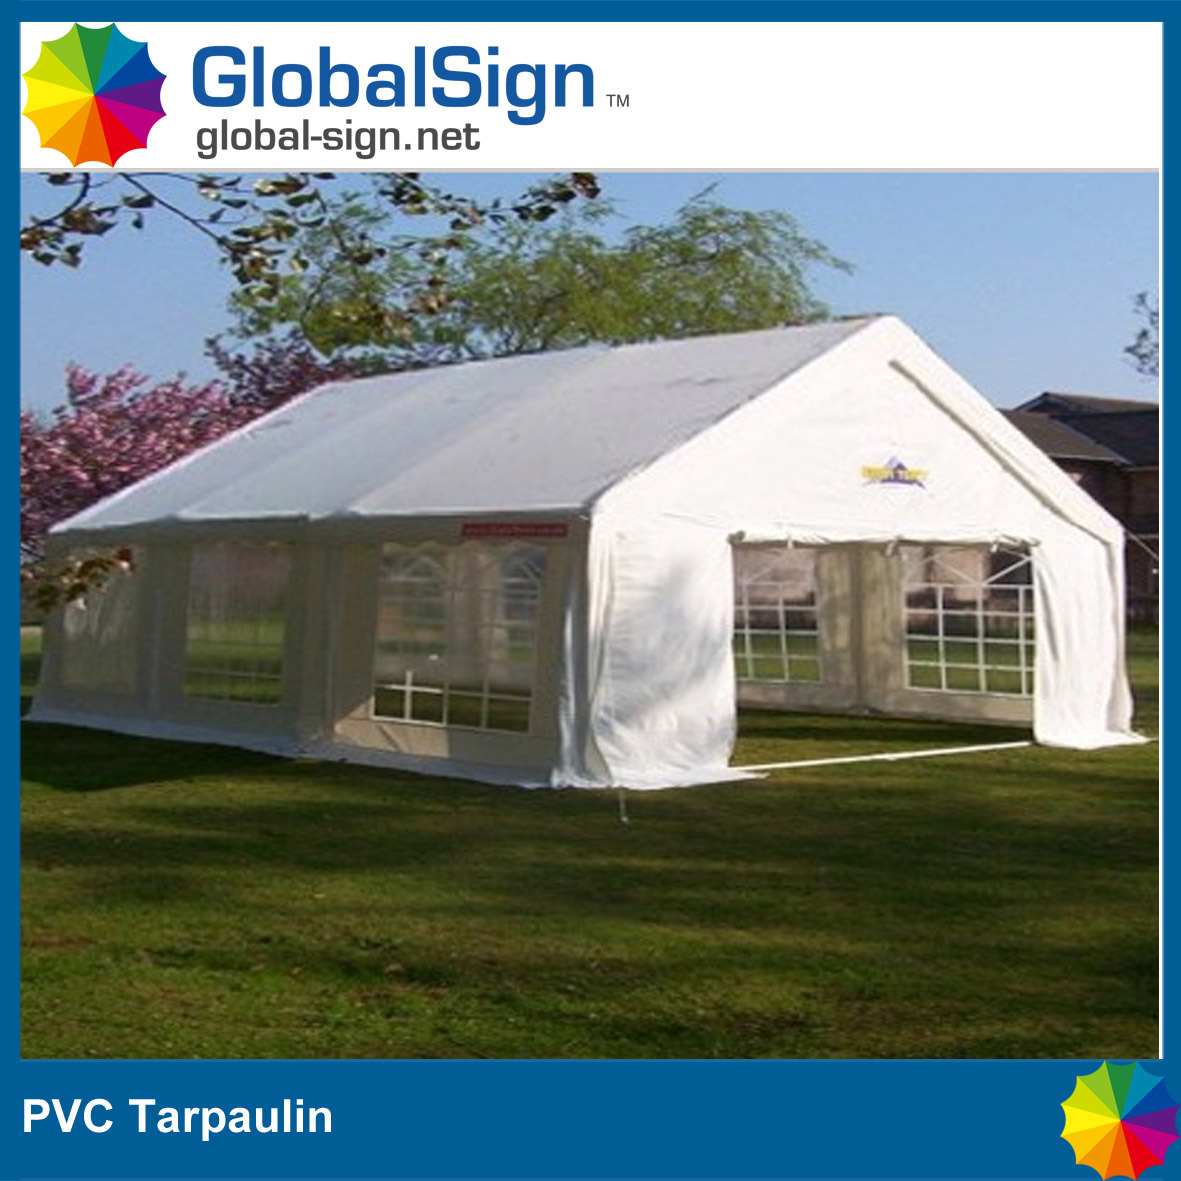 PVC Coated Tarpaulin for Awnings